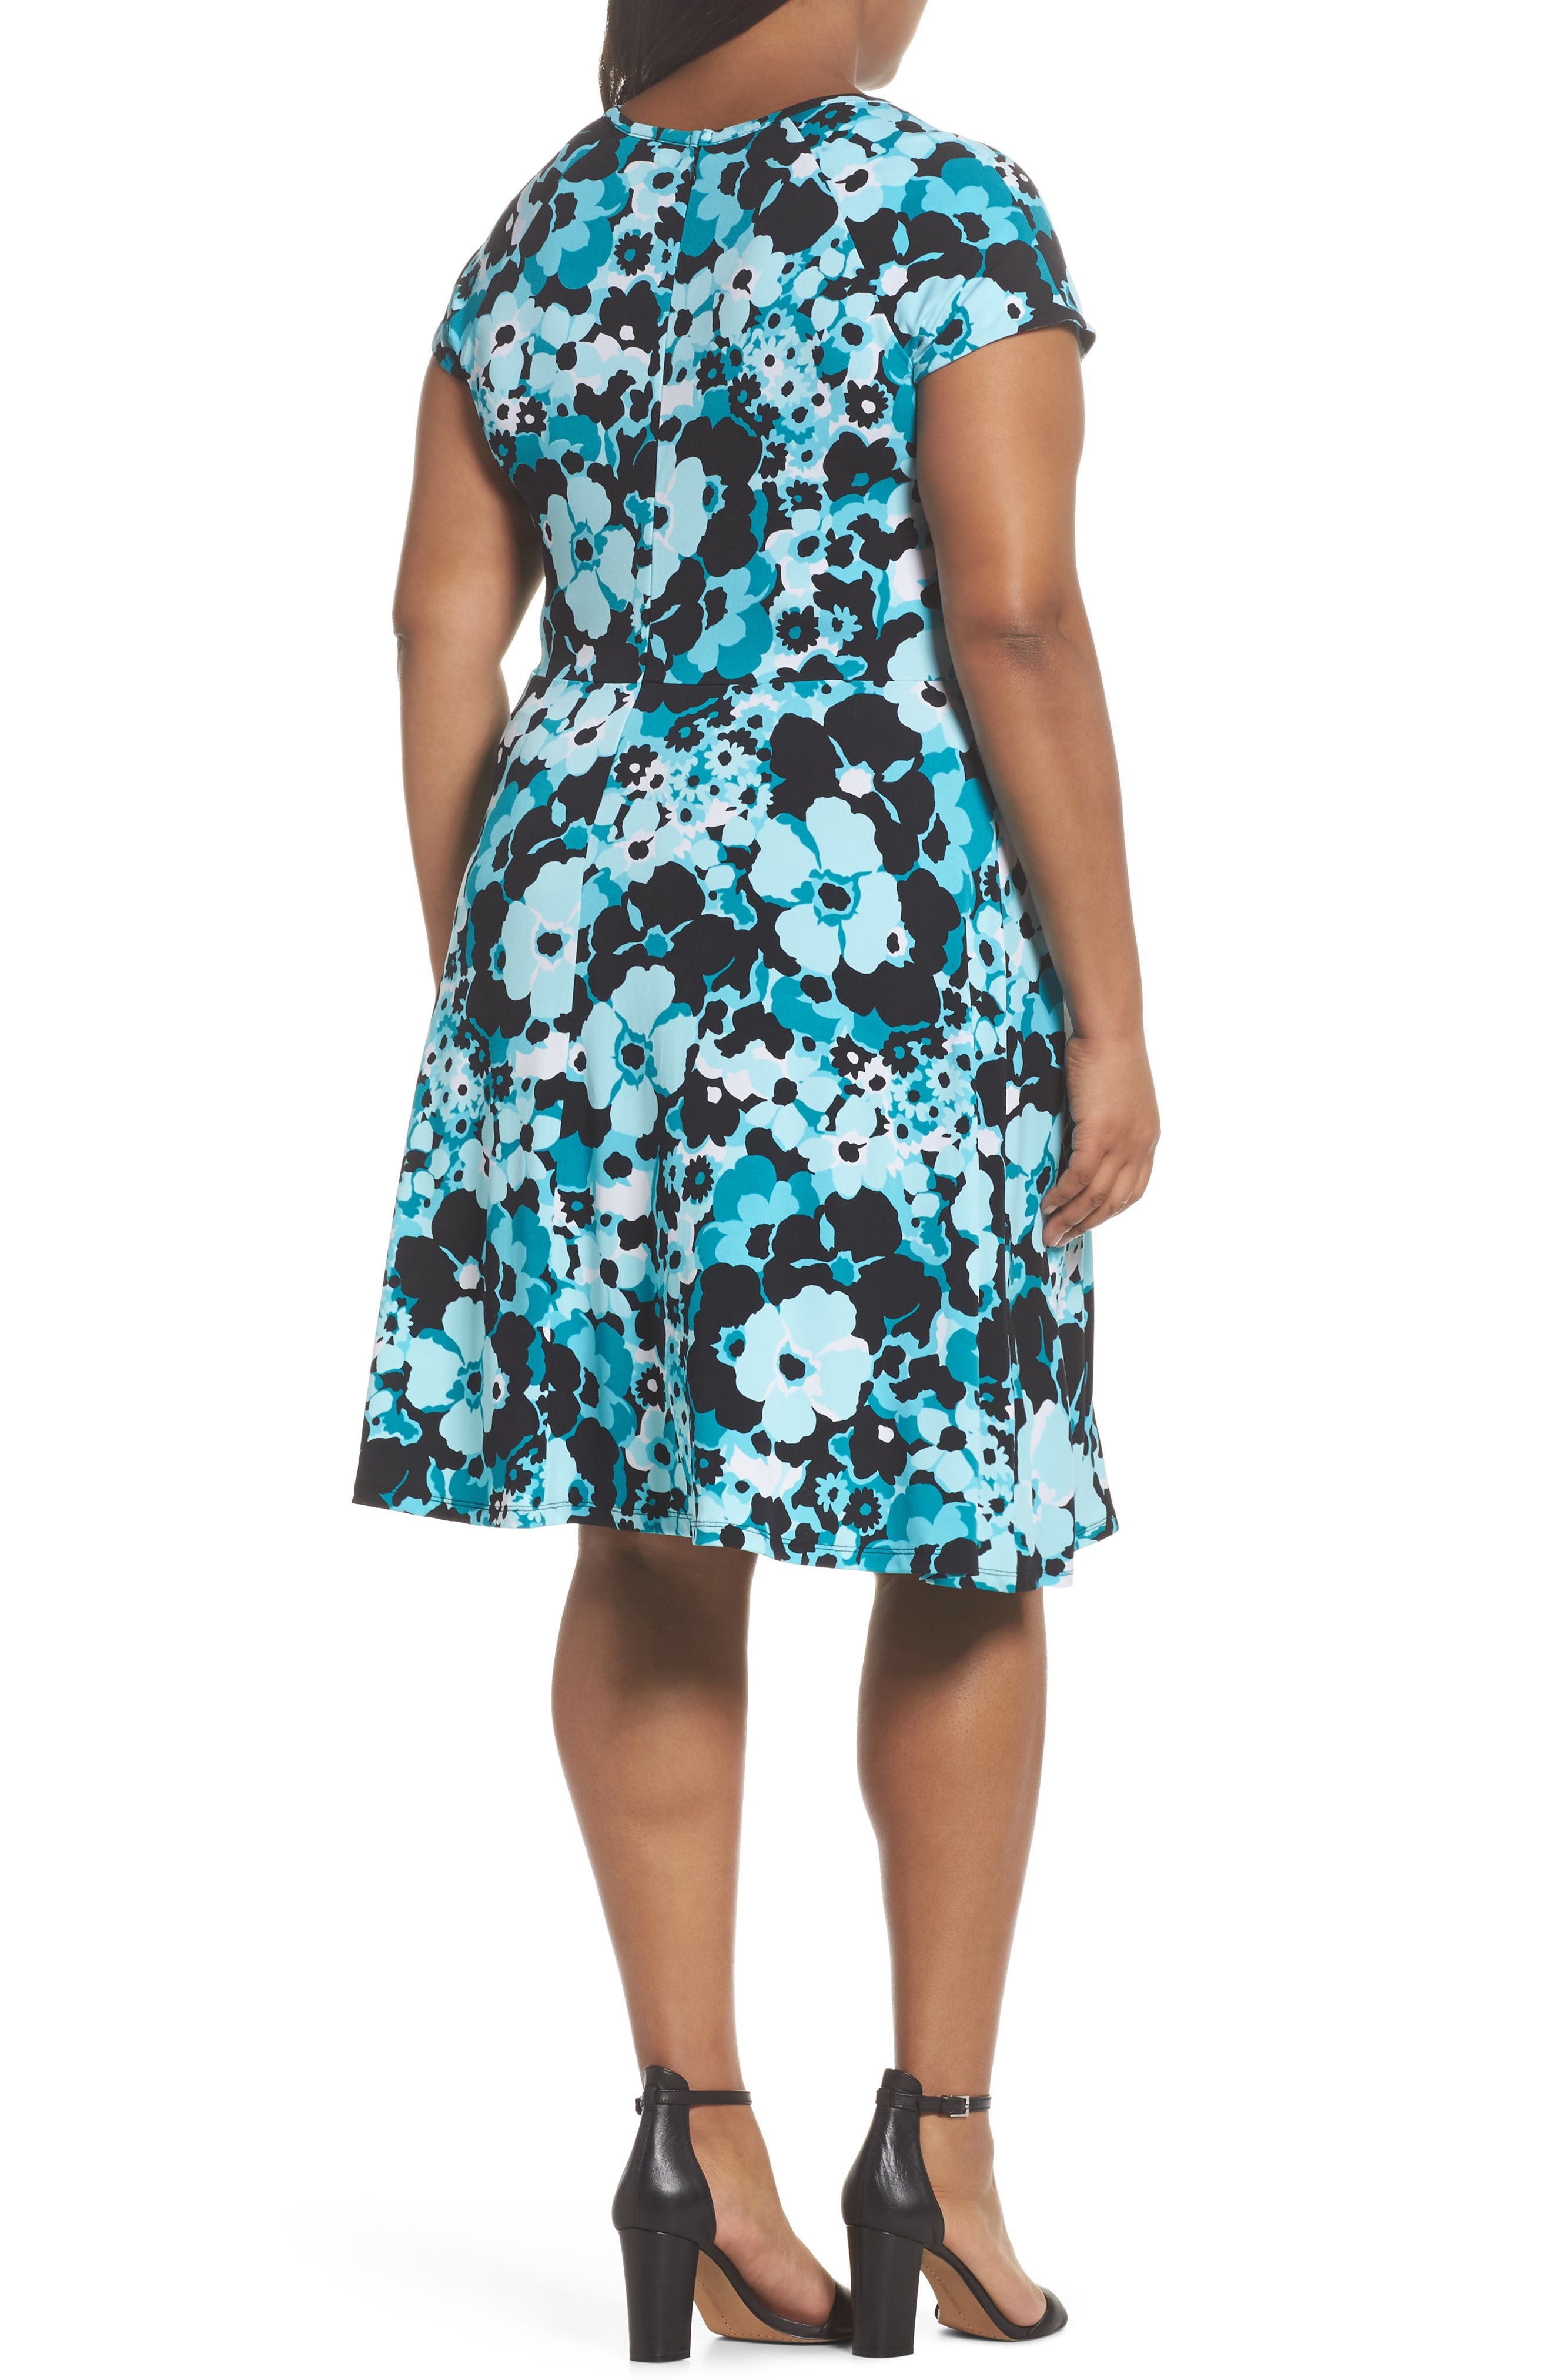 Springtime Floral Cutout Dress,                             Alternate thumbnail 2, color,                             494